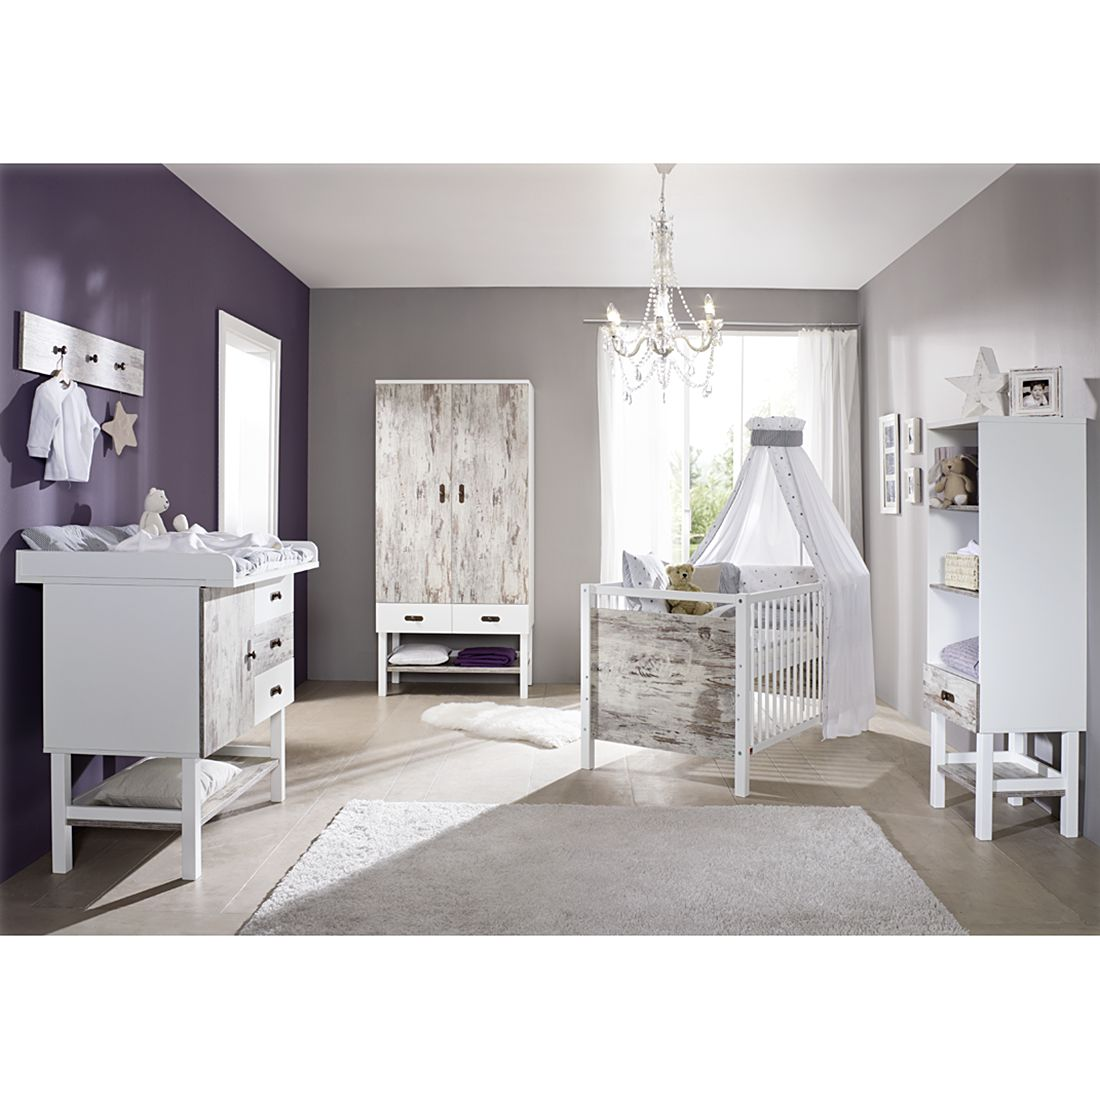 plan petite chambre bebe avec des id es int ressantes pour la conception de la. Black Bedroom Furniture Sets. Home Design Ideas